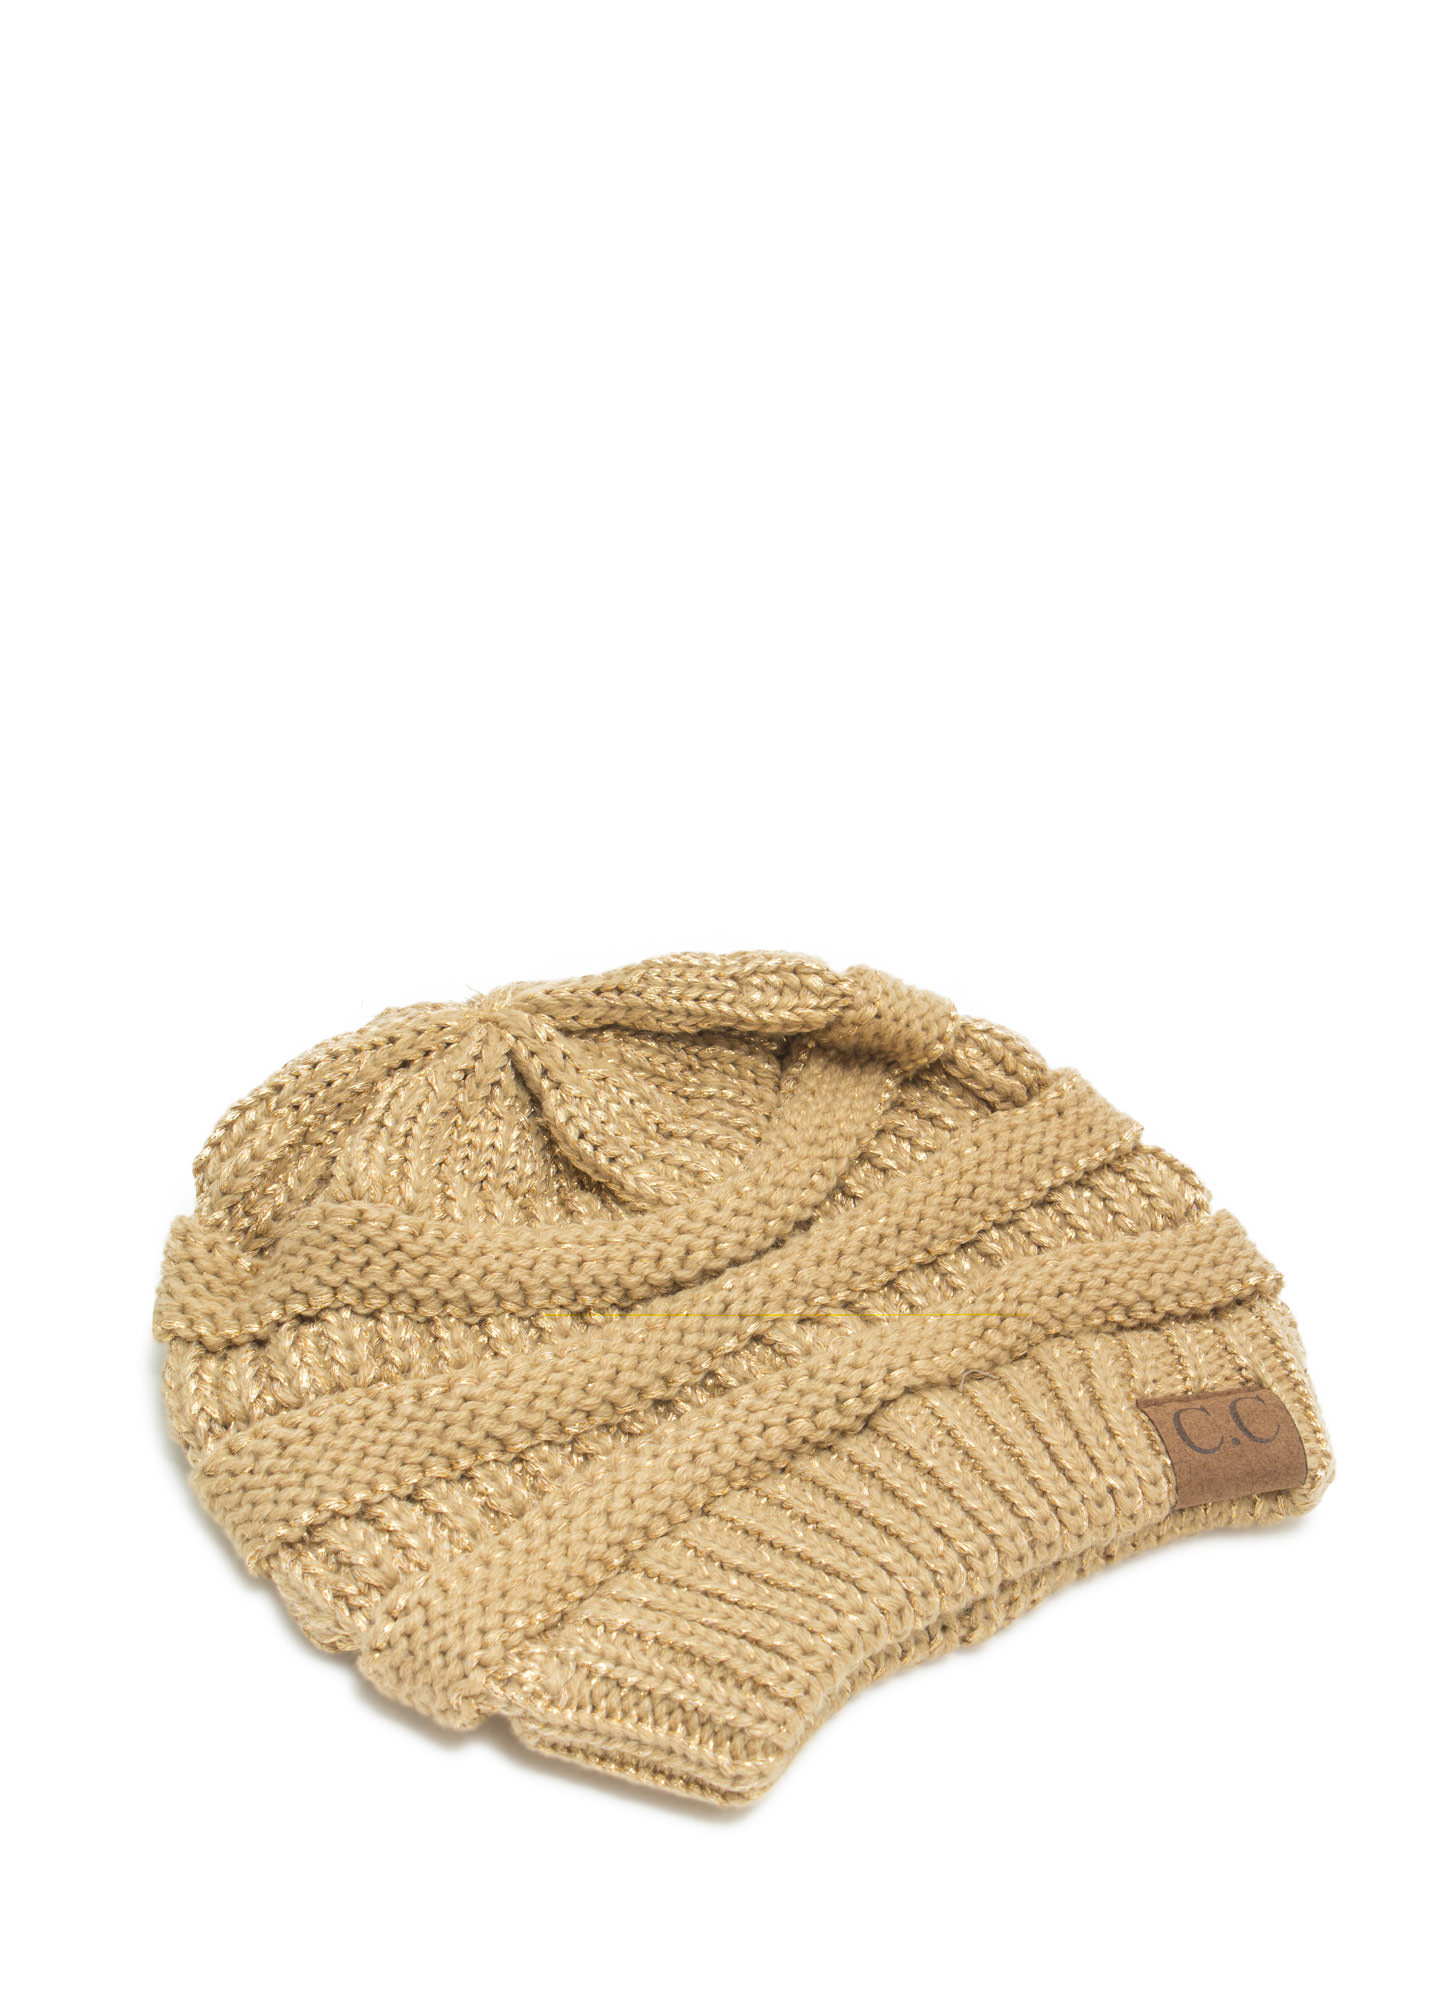 CC Cable Knit Beanie GOLD